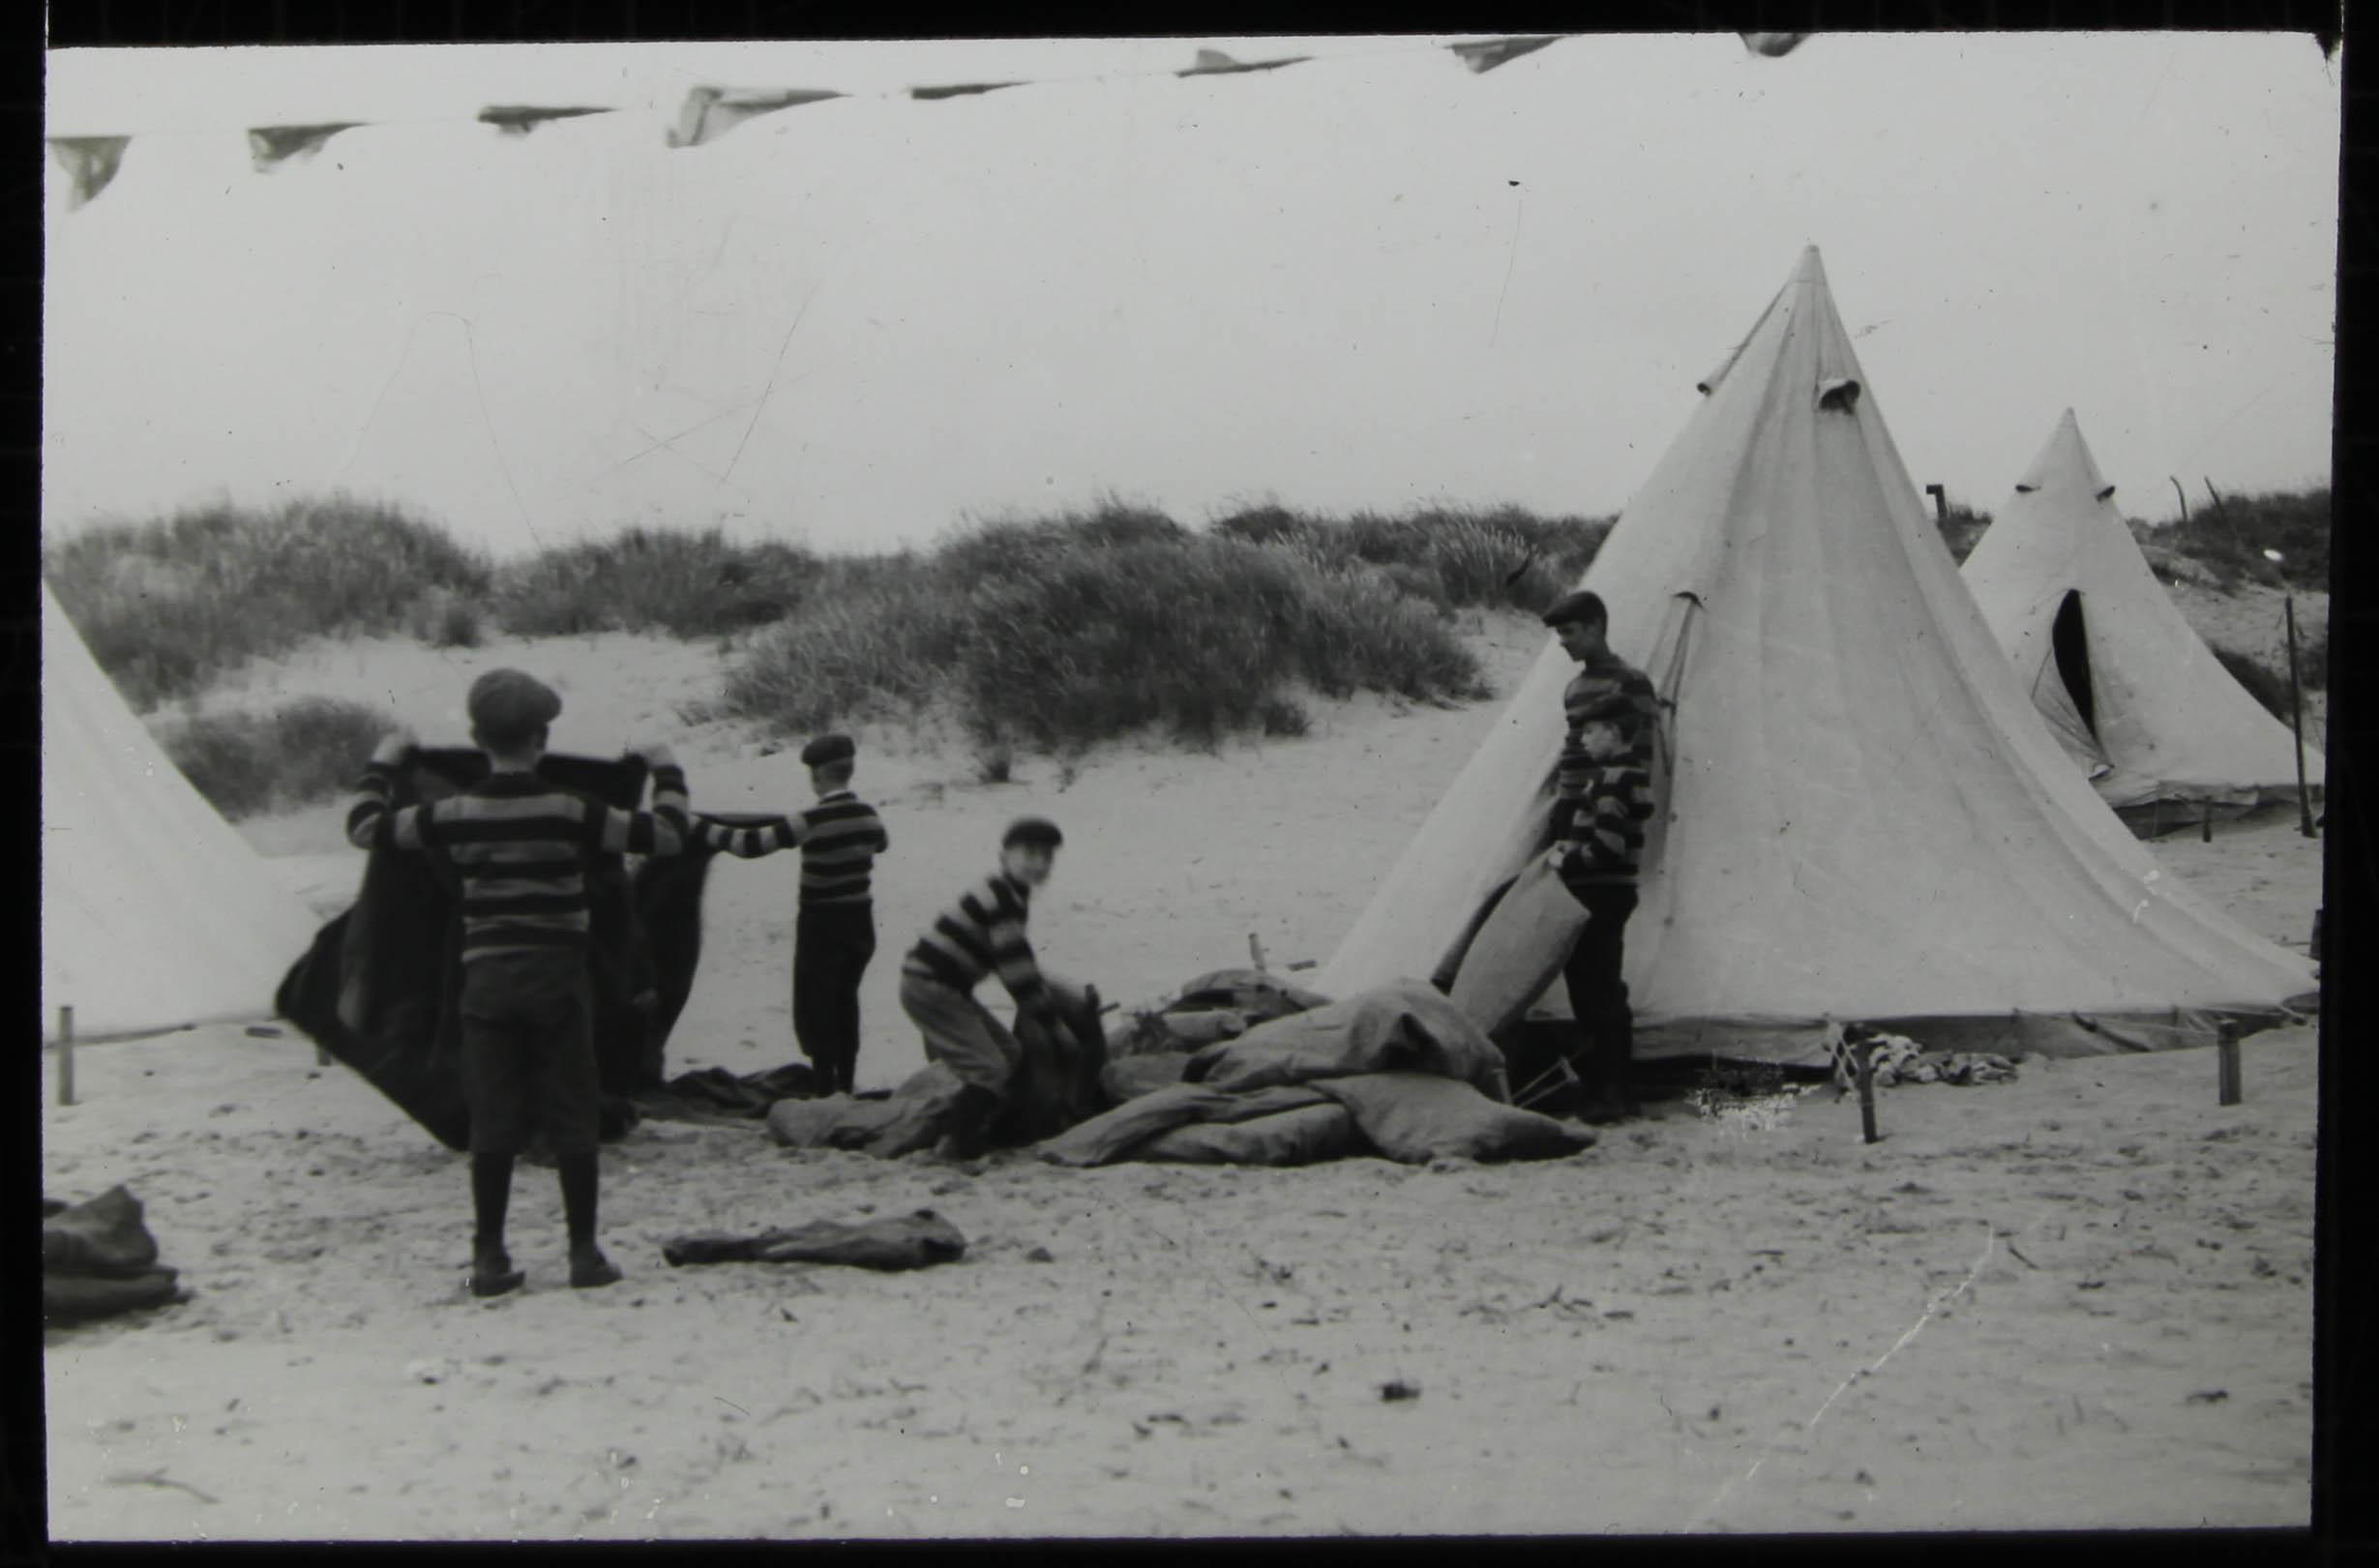 Boys pitching tents on the dunes -